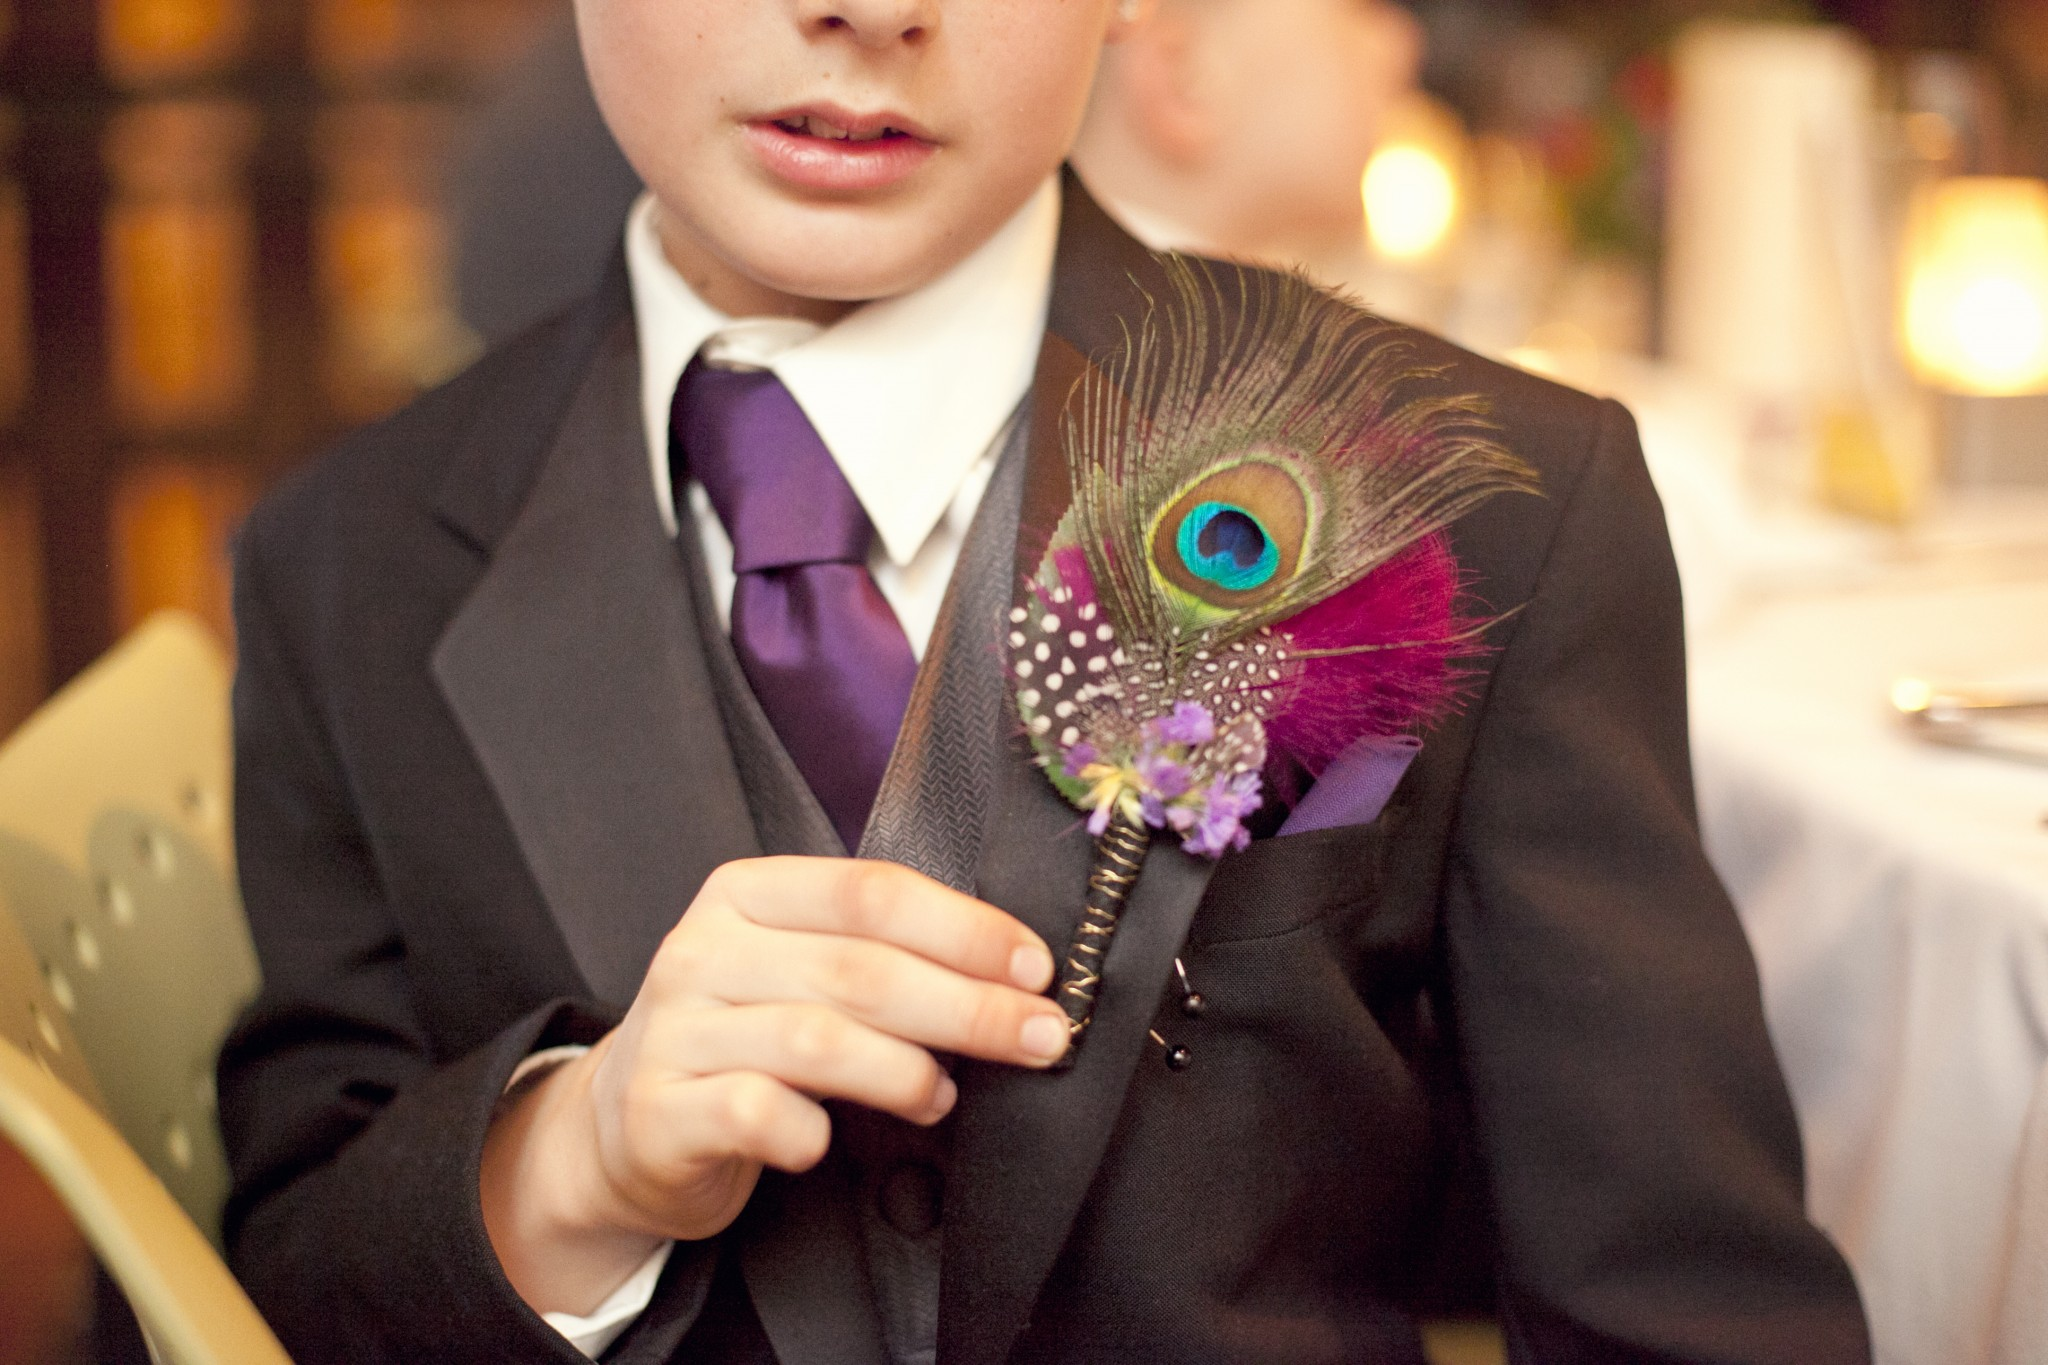 peacock feather wedding decoration - Summer Wedding Ideas